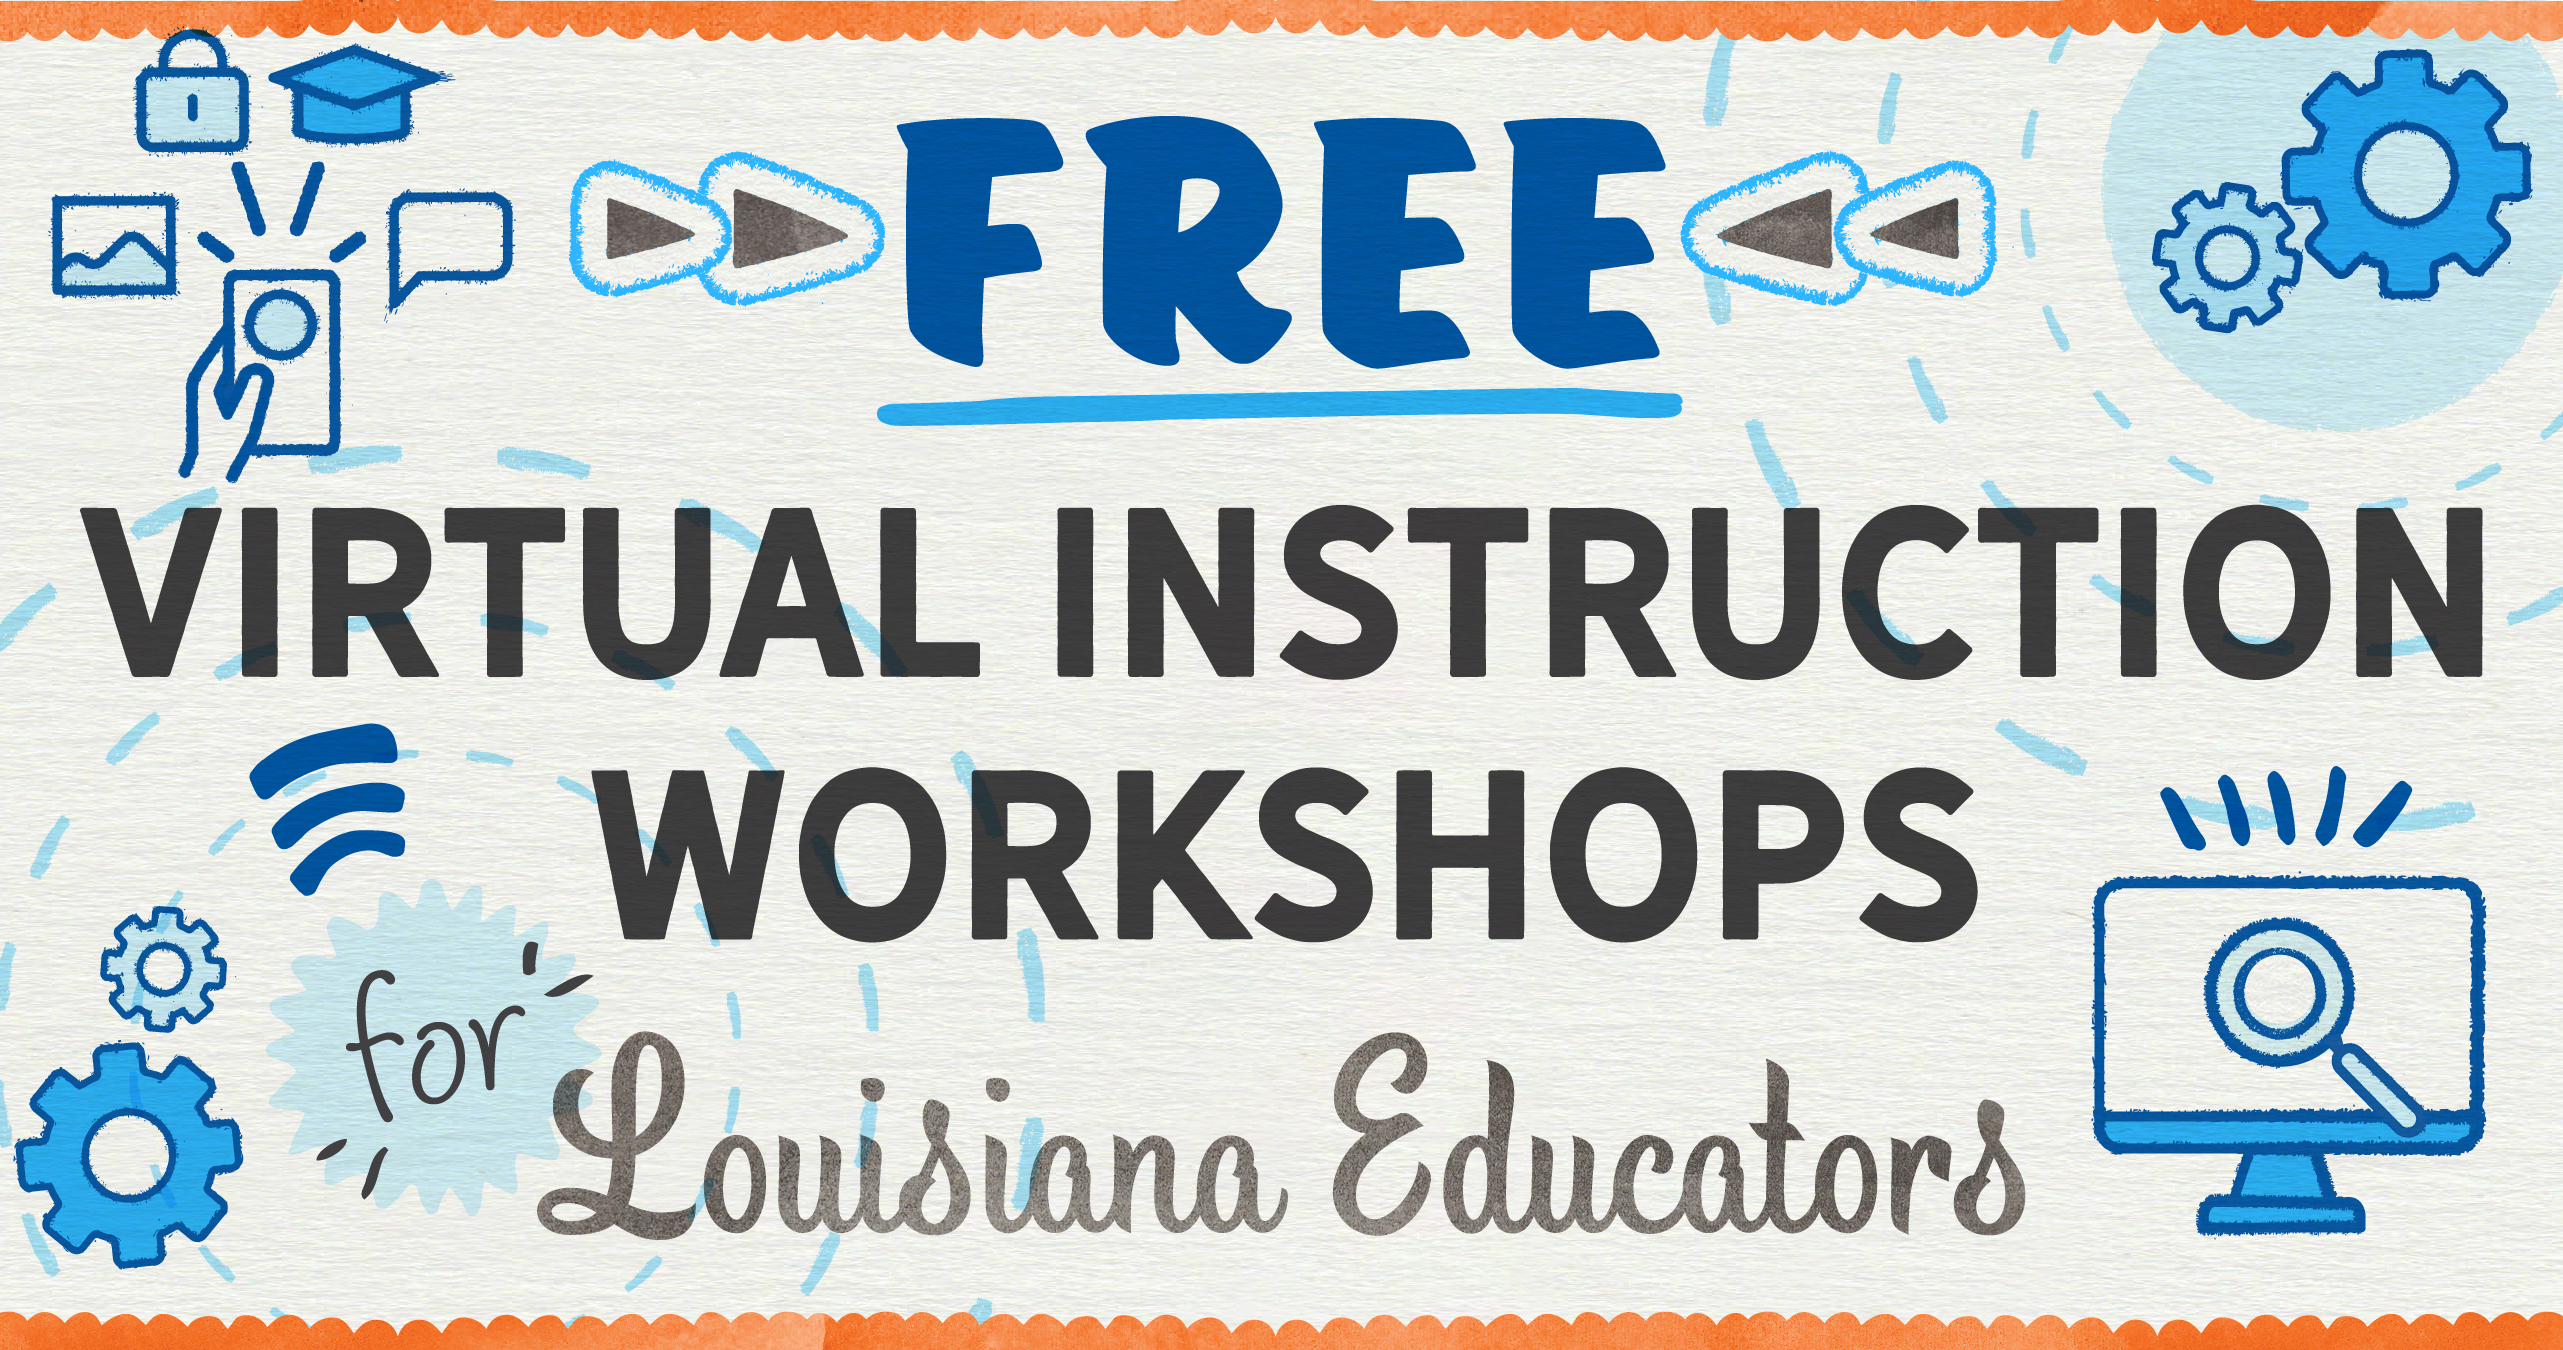 View Free Virtual Instruction Workshops for Louisiana Educators